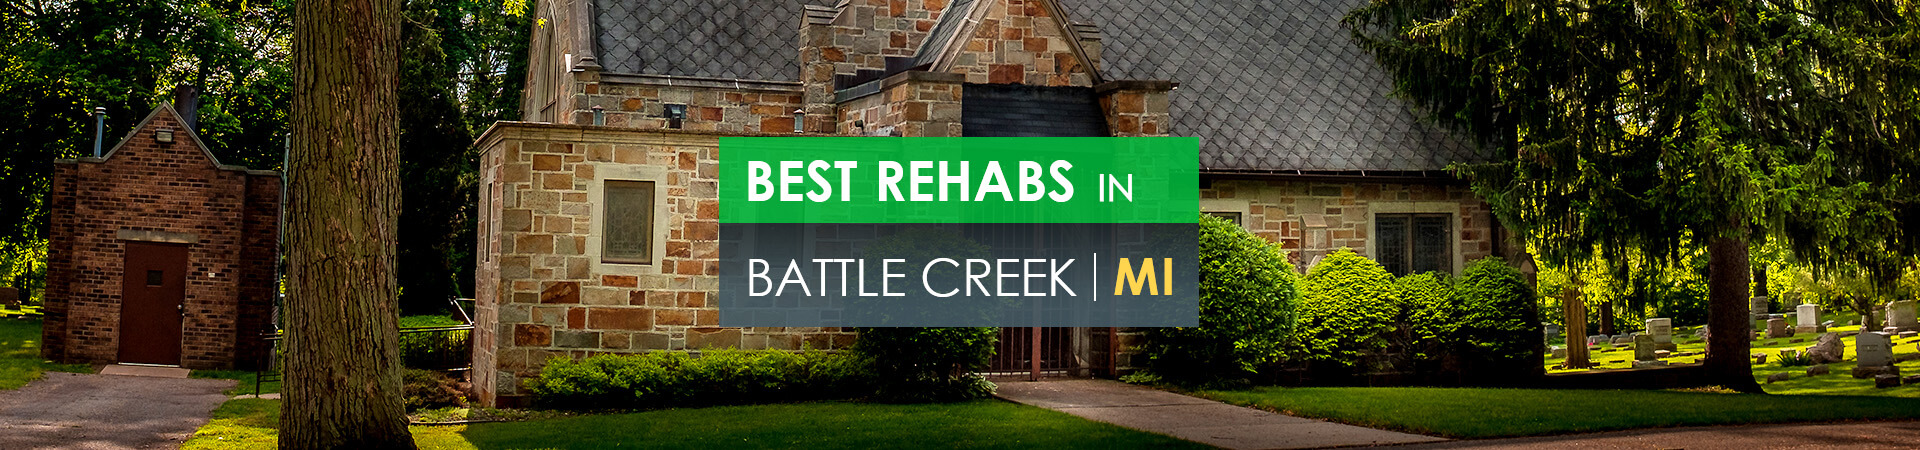 Best rehabs in Battle Creek, MI